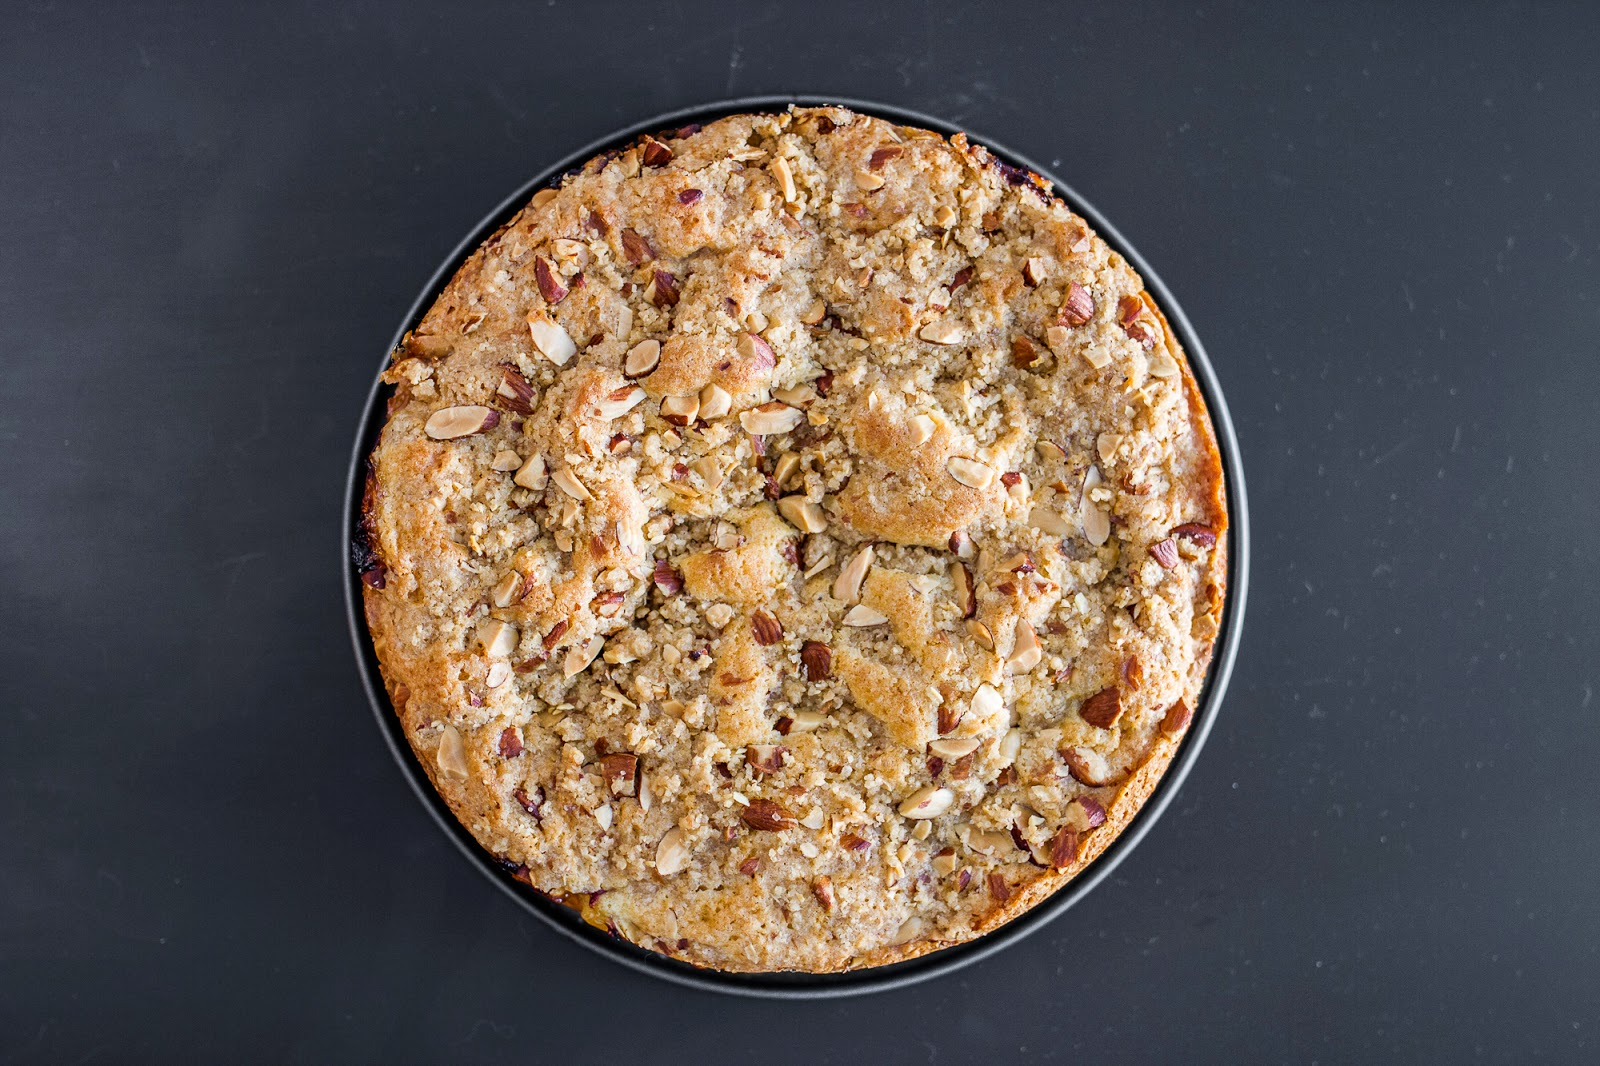 The Joy of Cooking's Apricot Kuchen